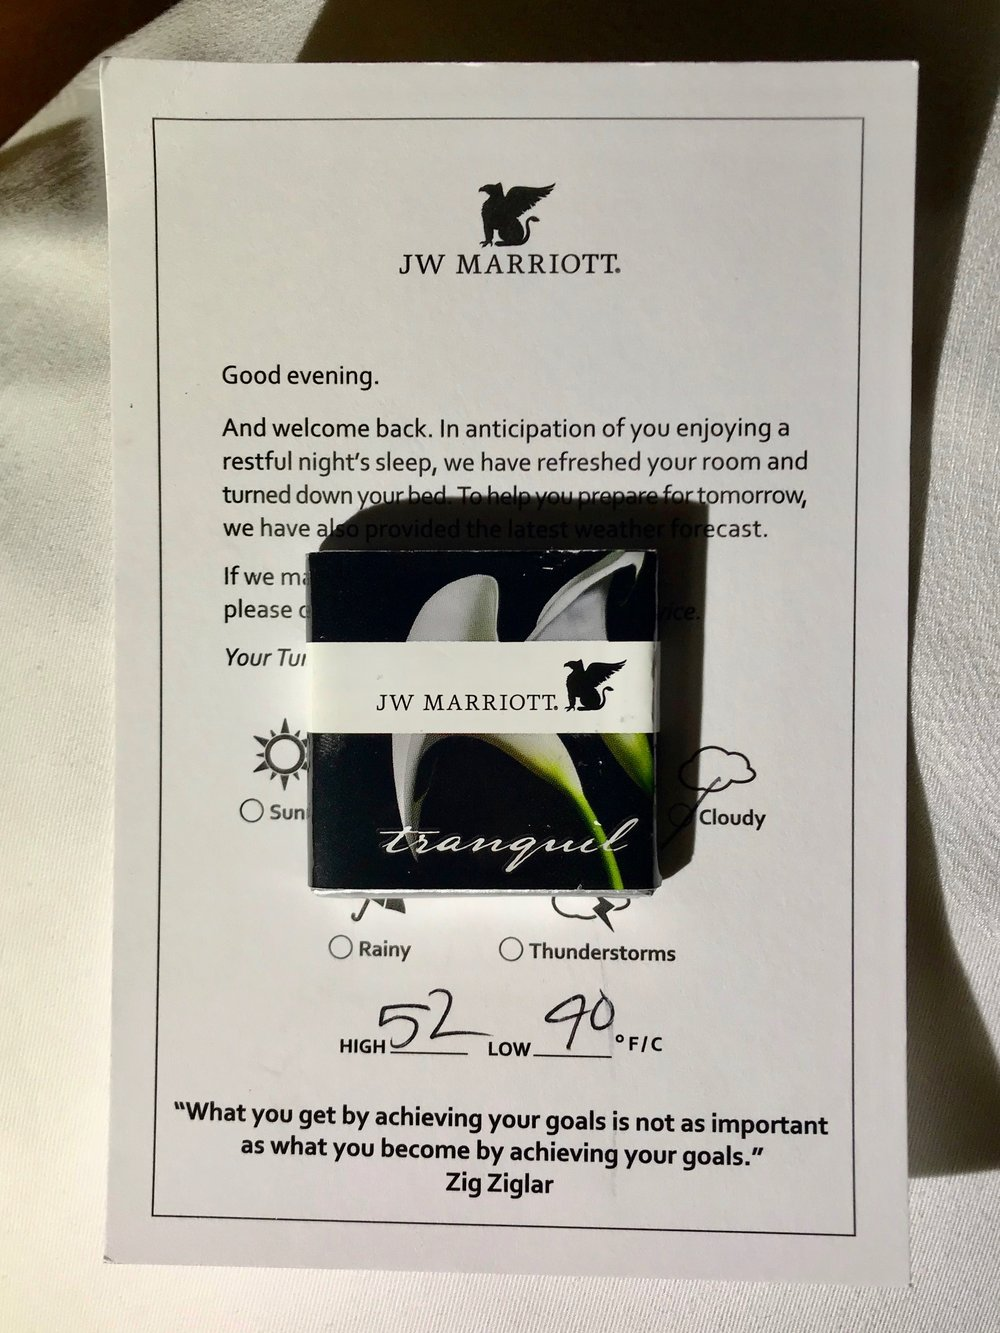 There was nightly turndown service that included the next day's weather forecast